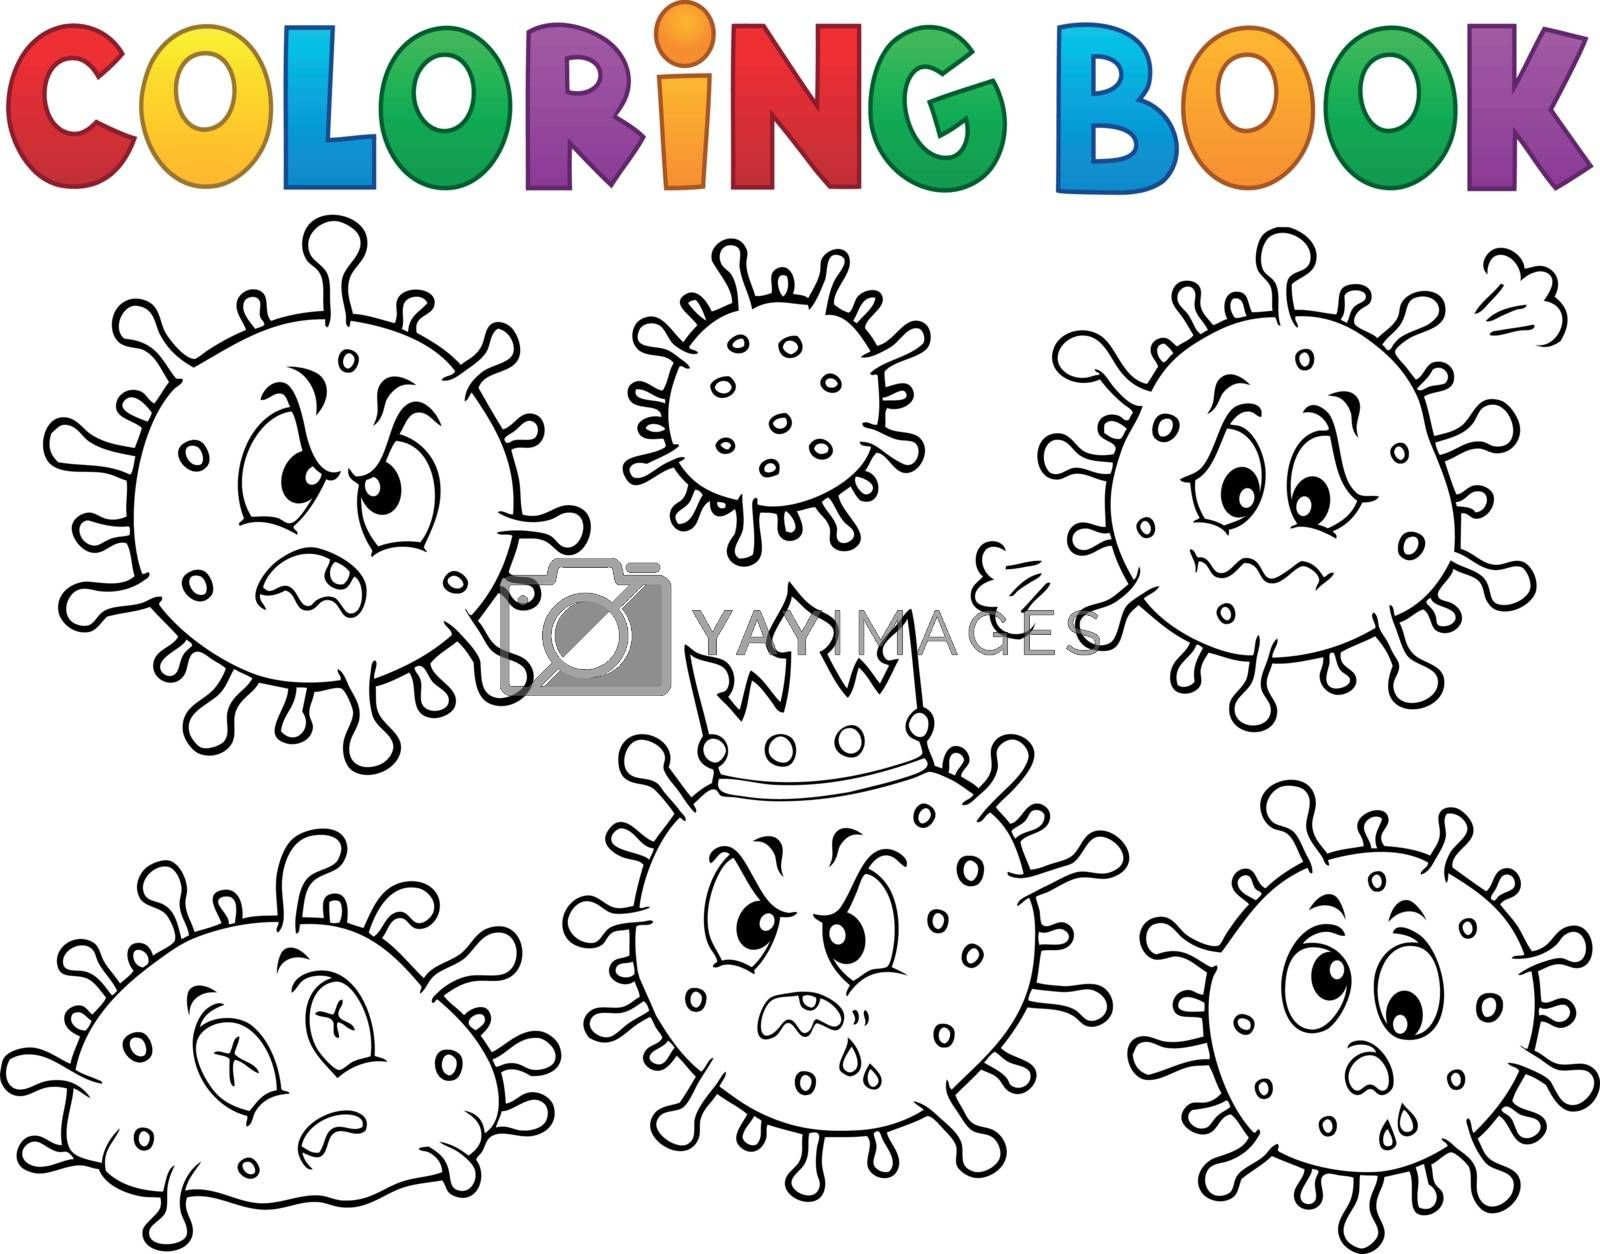 Coloring book viruses set 1 - eps10 vector illustration.